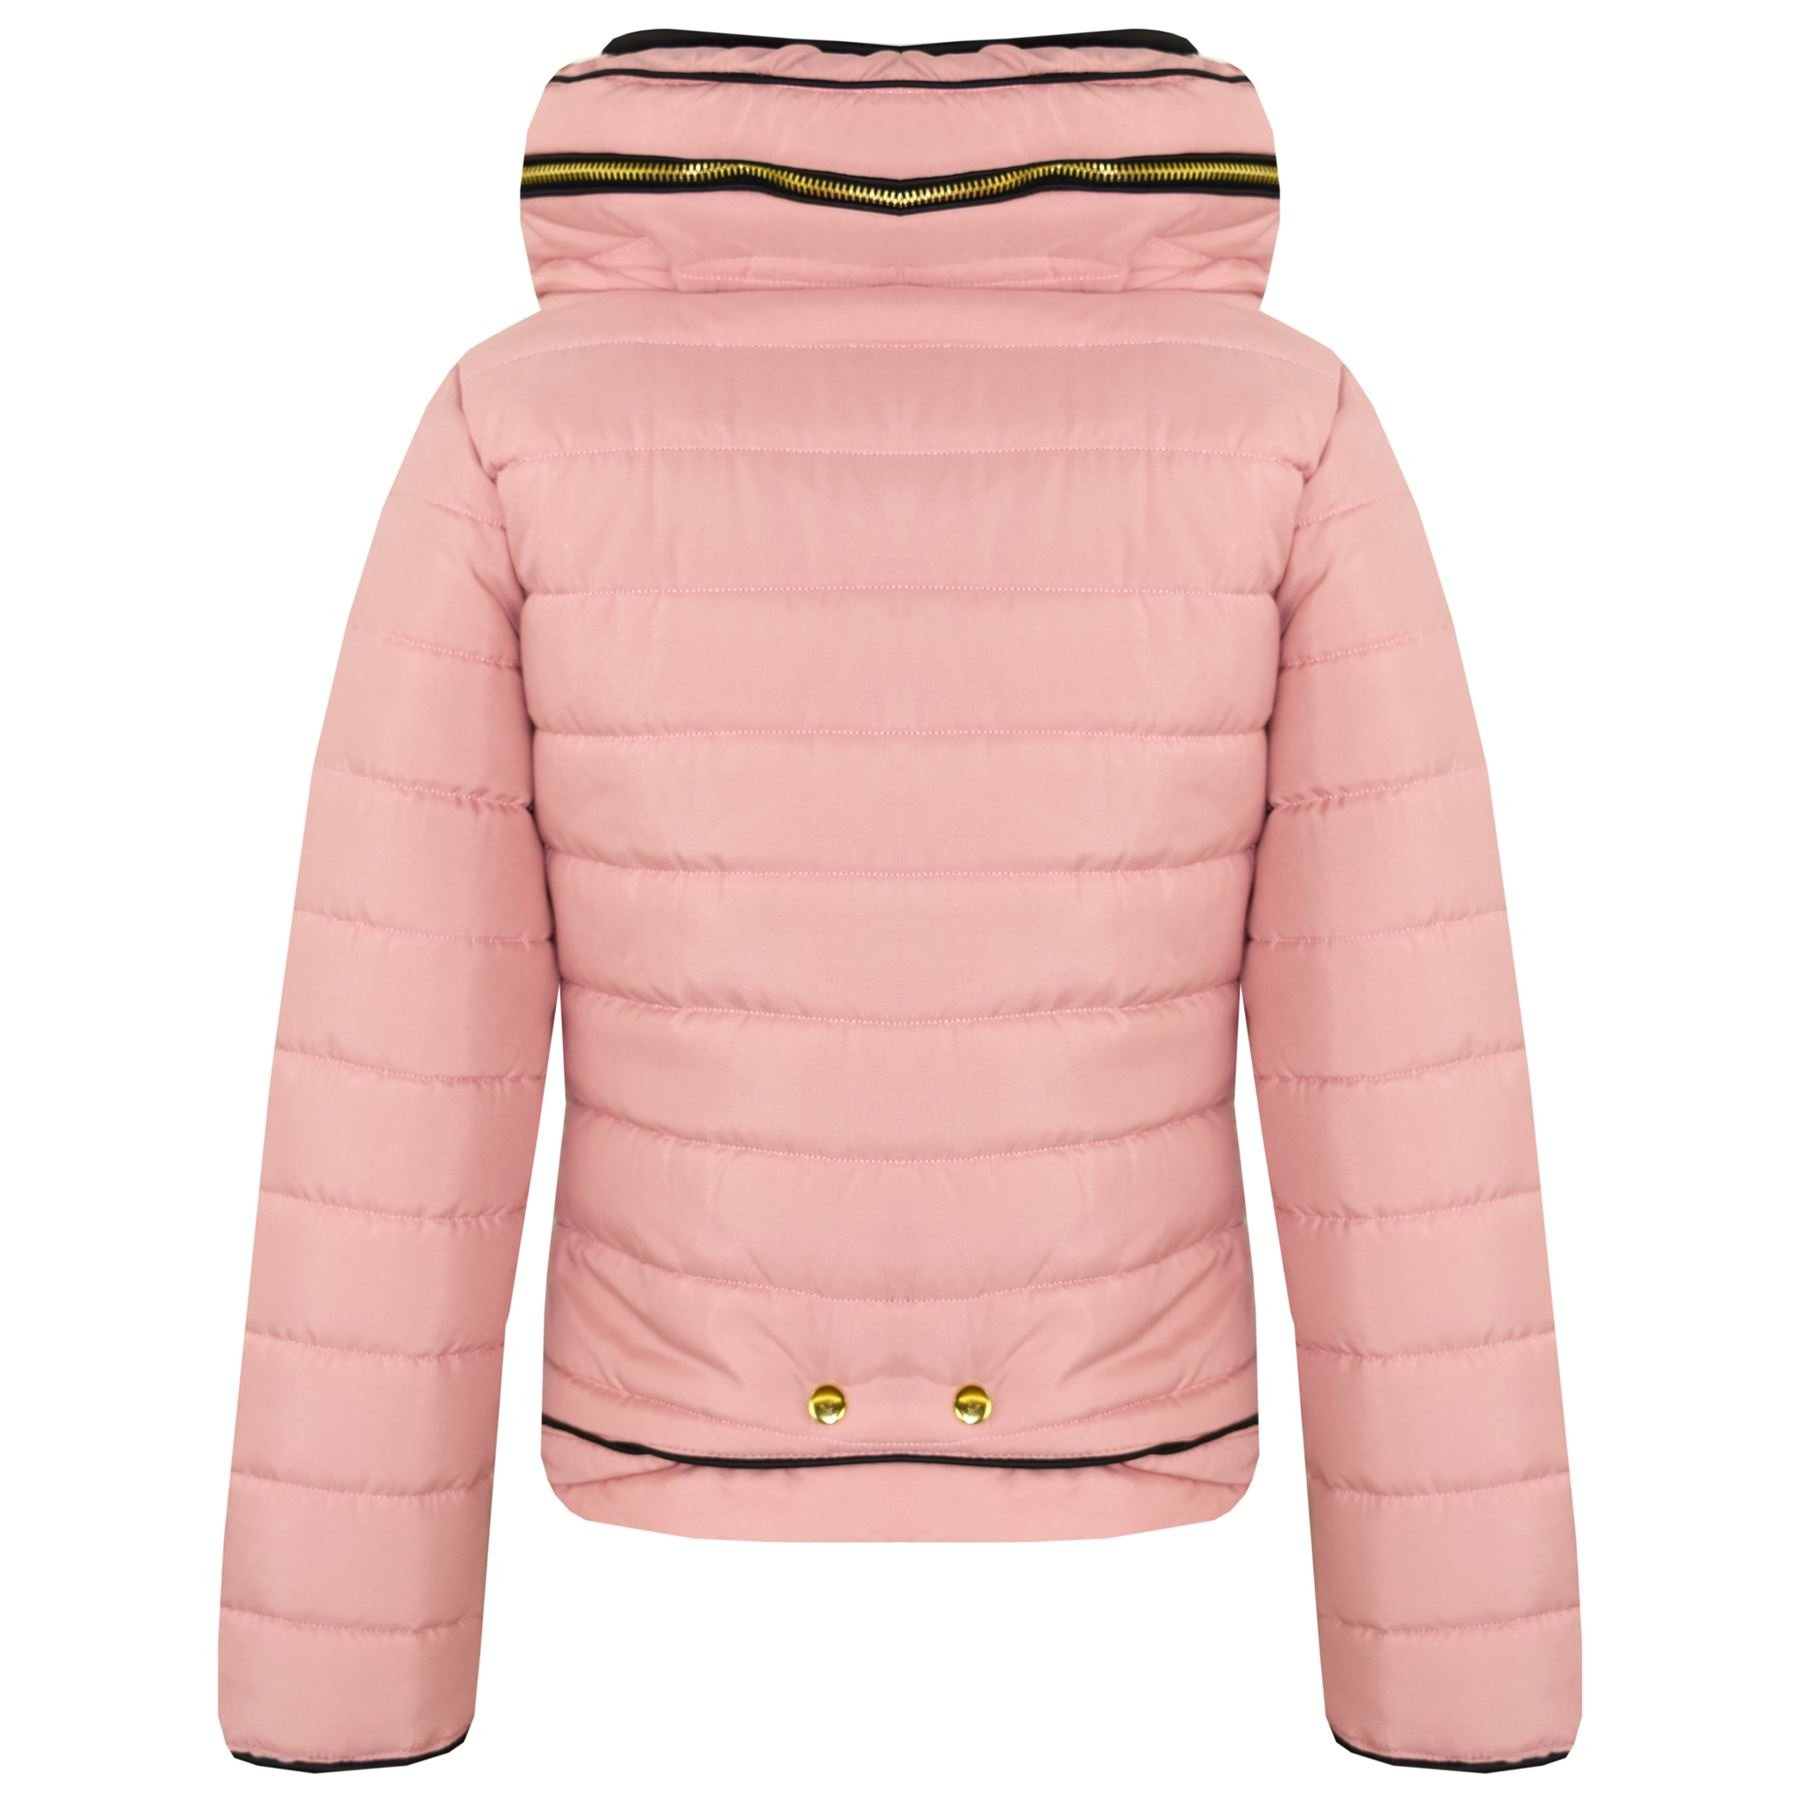 A2Z 4 Kids/® Girls Jacket Kids Stylish Padded Puffer Bubble Faux Fur Collar Quilted Warm Thick Coat Jackets Age 3 4 5 6 7 8 9 10 11 12 13 Years